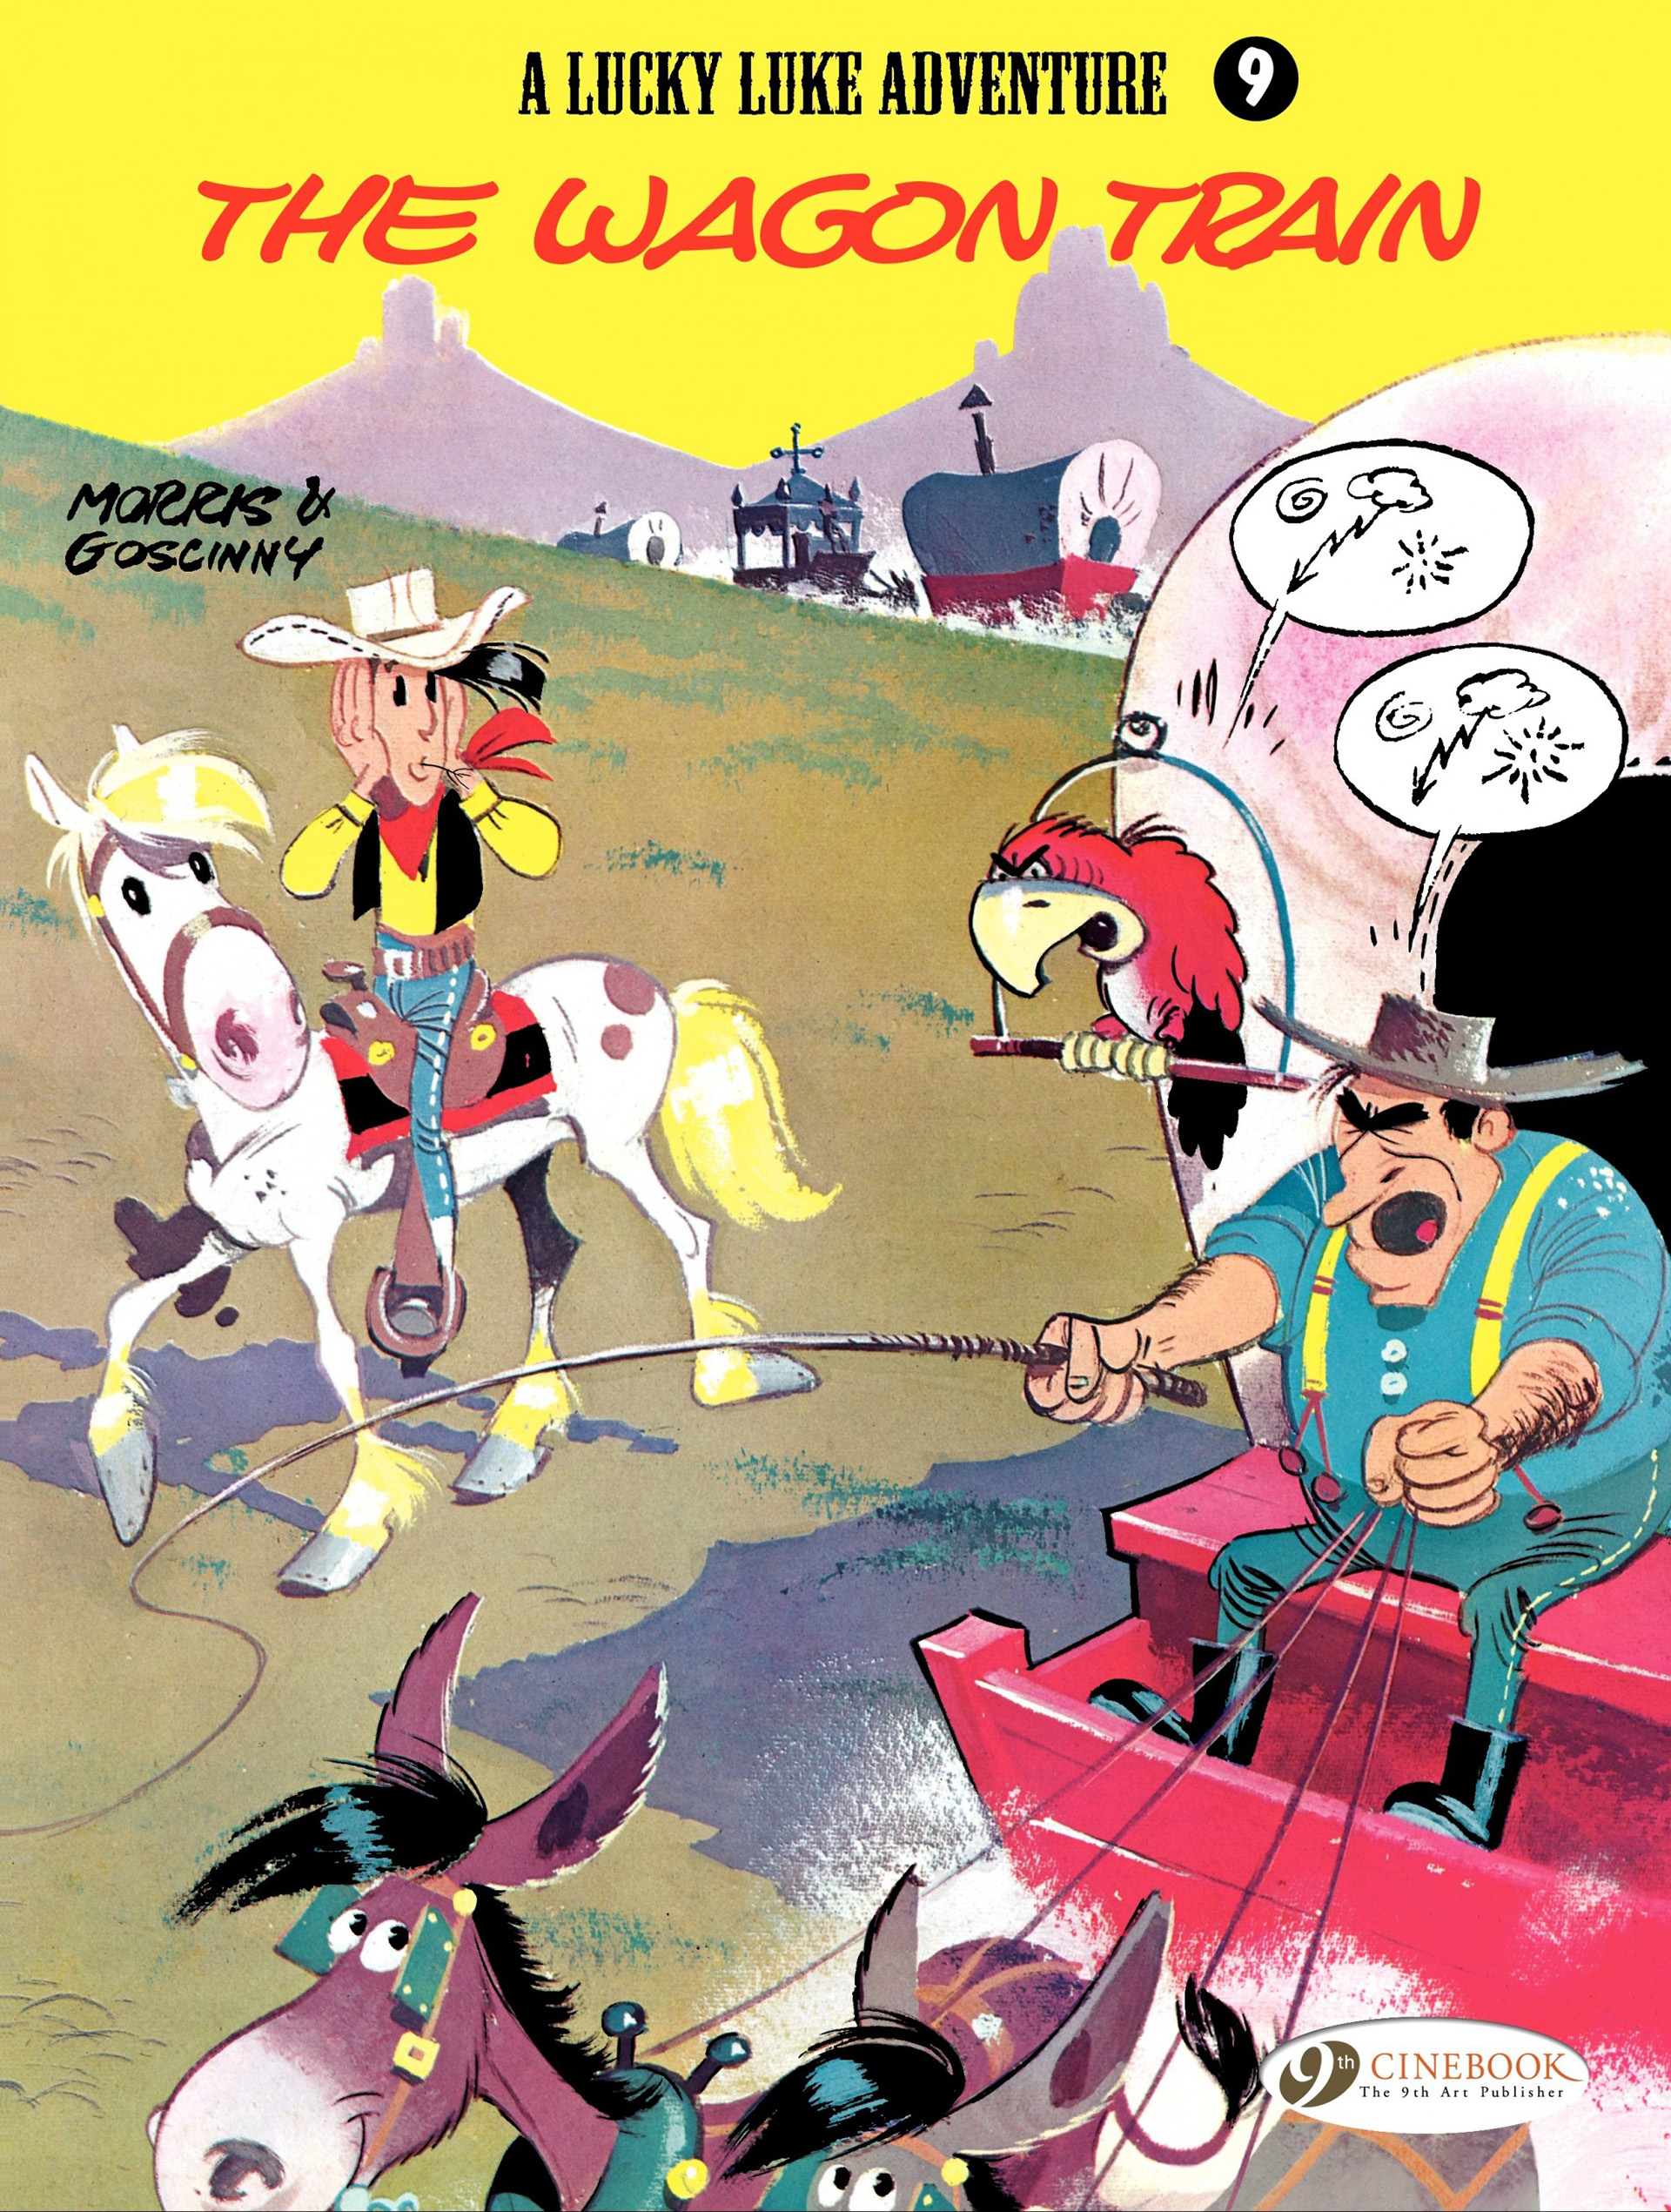 A Lucky Luke Adventure 9 Page 1